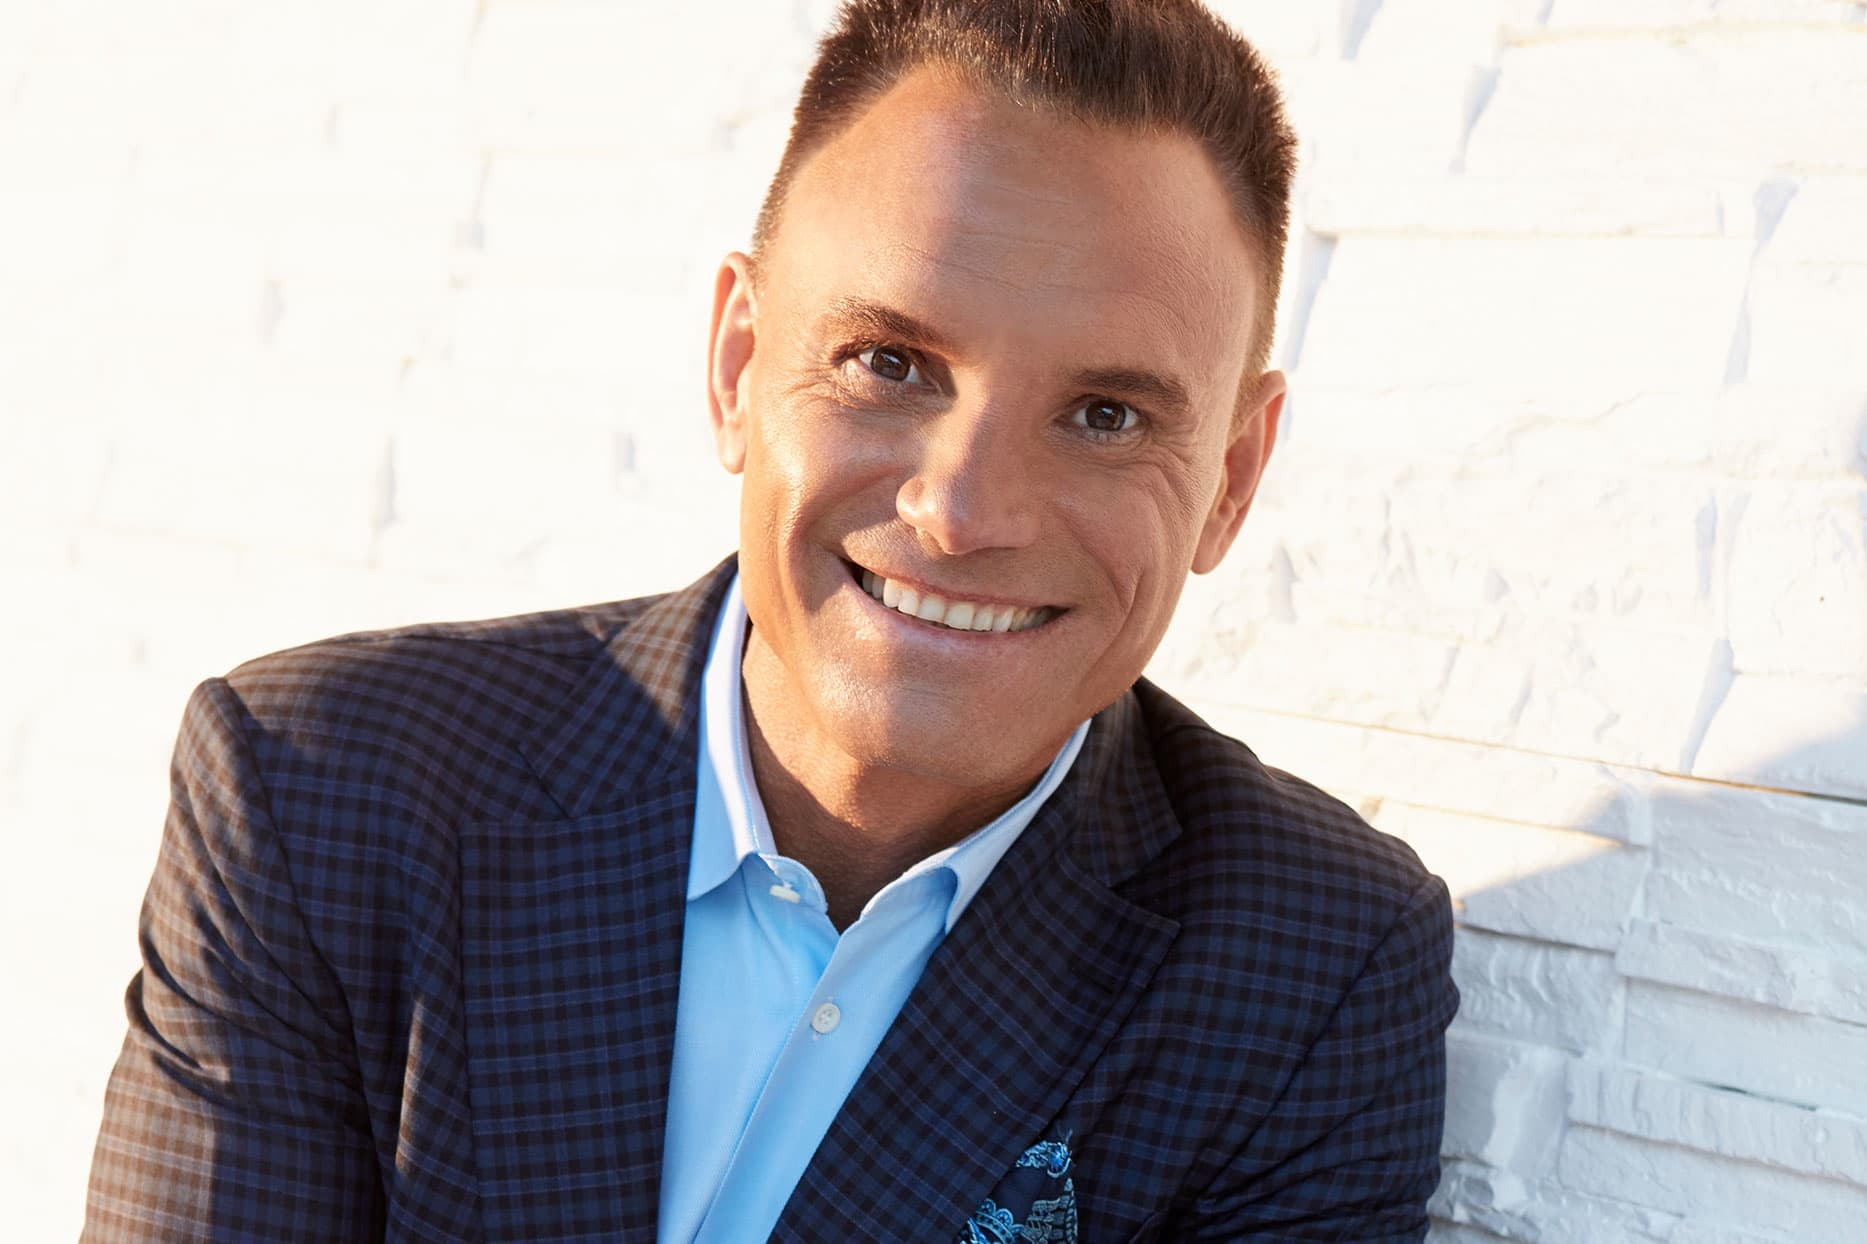 'Shark Tank' investor Kevin Harrington: 'Mentors have helped me all along my way' — here's how to find one